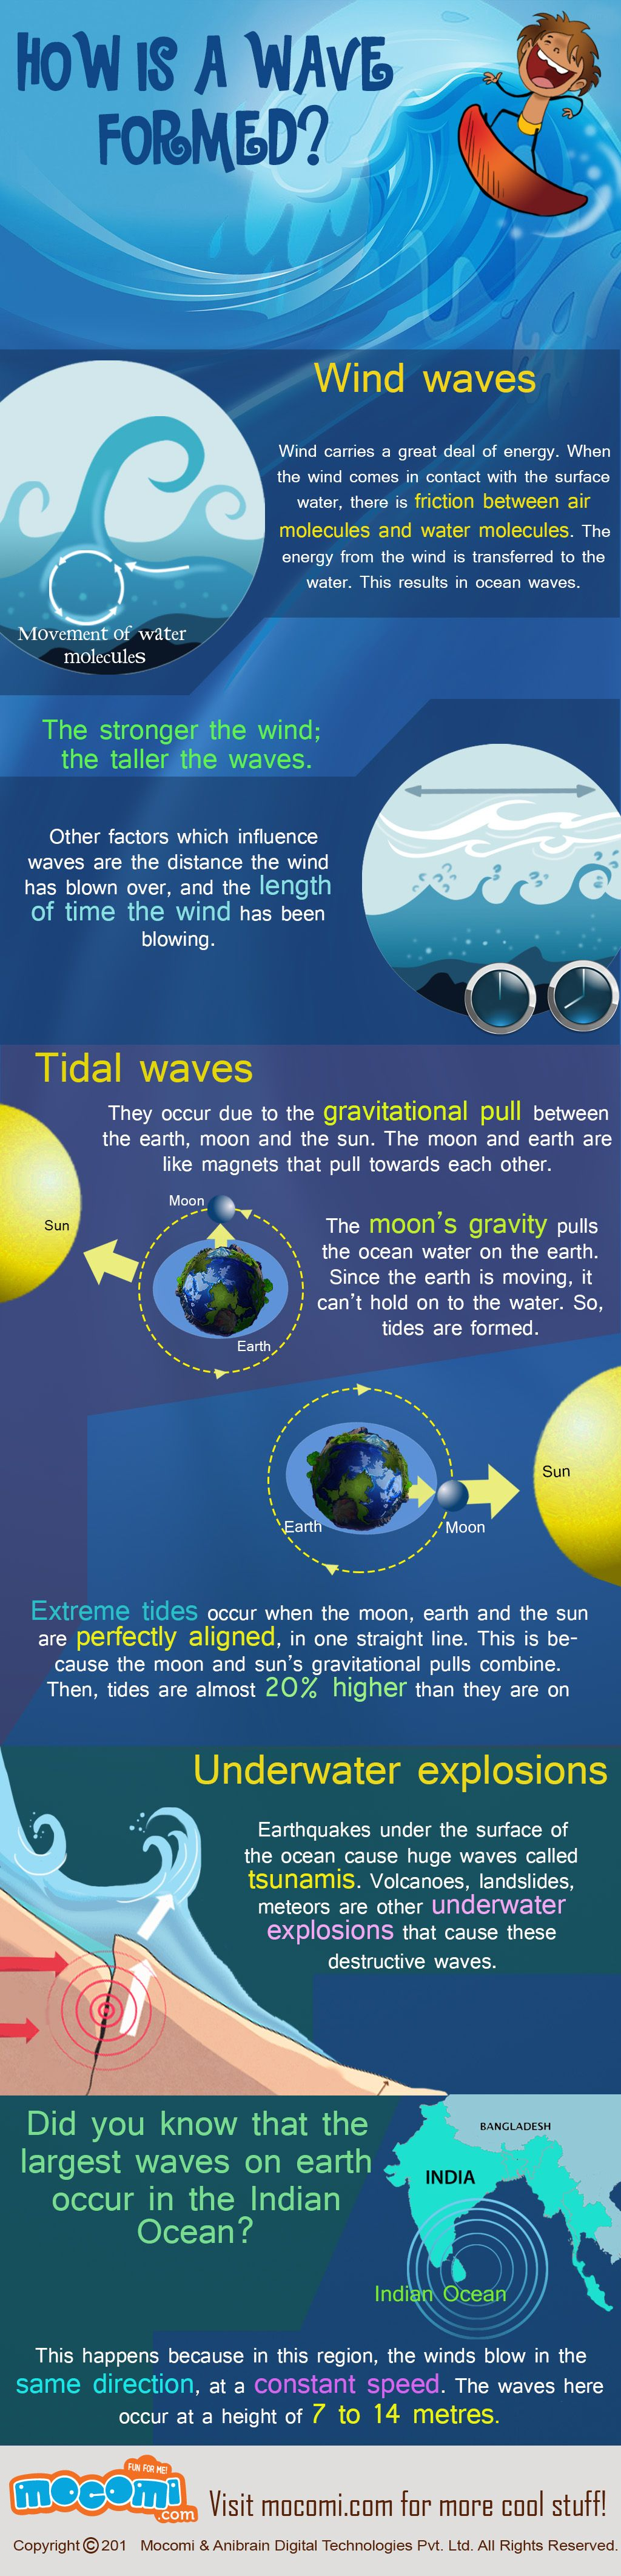 How Are Waves Formed Process And Facts